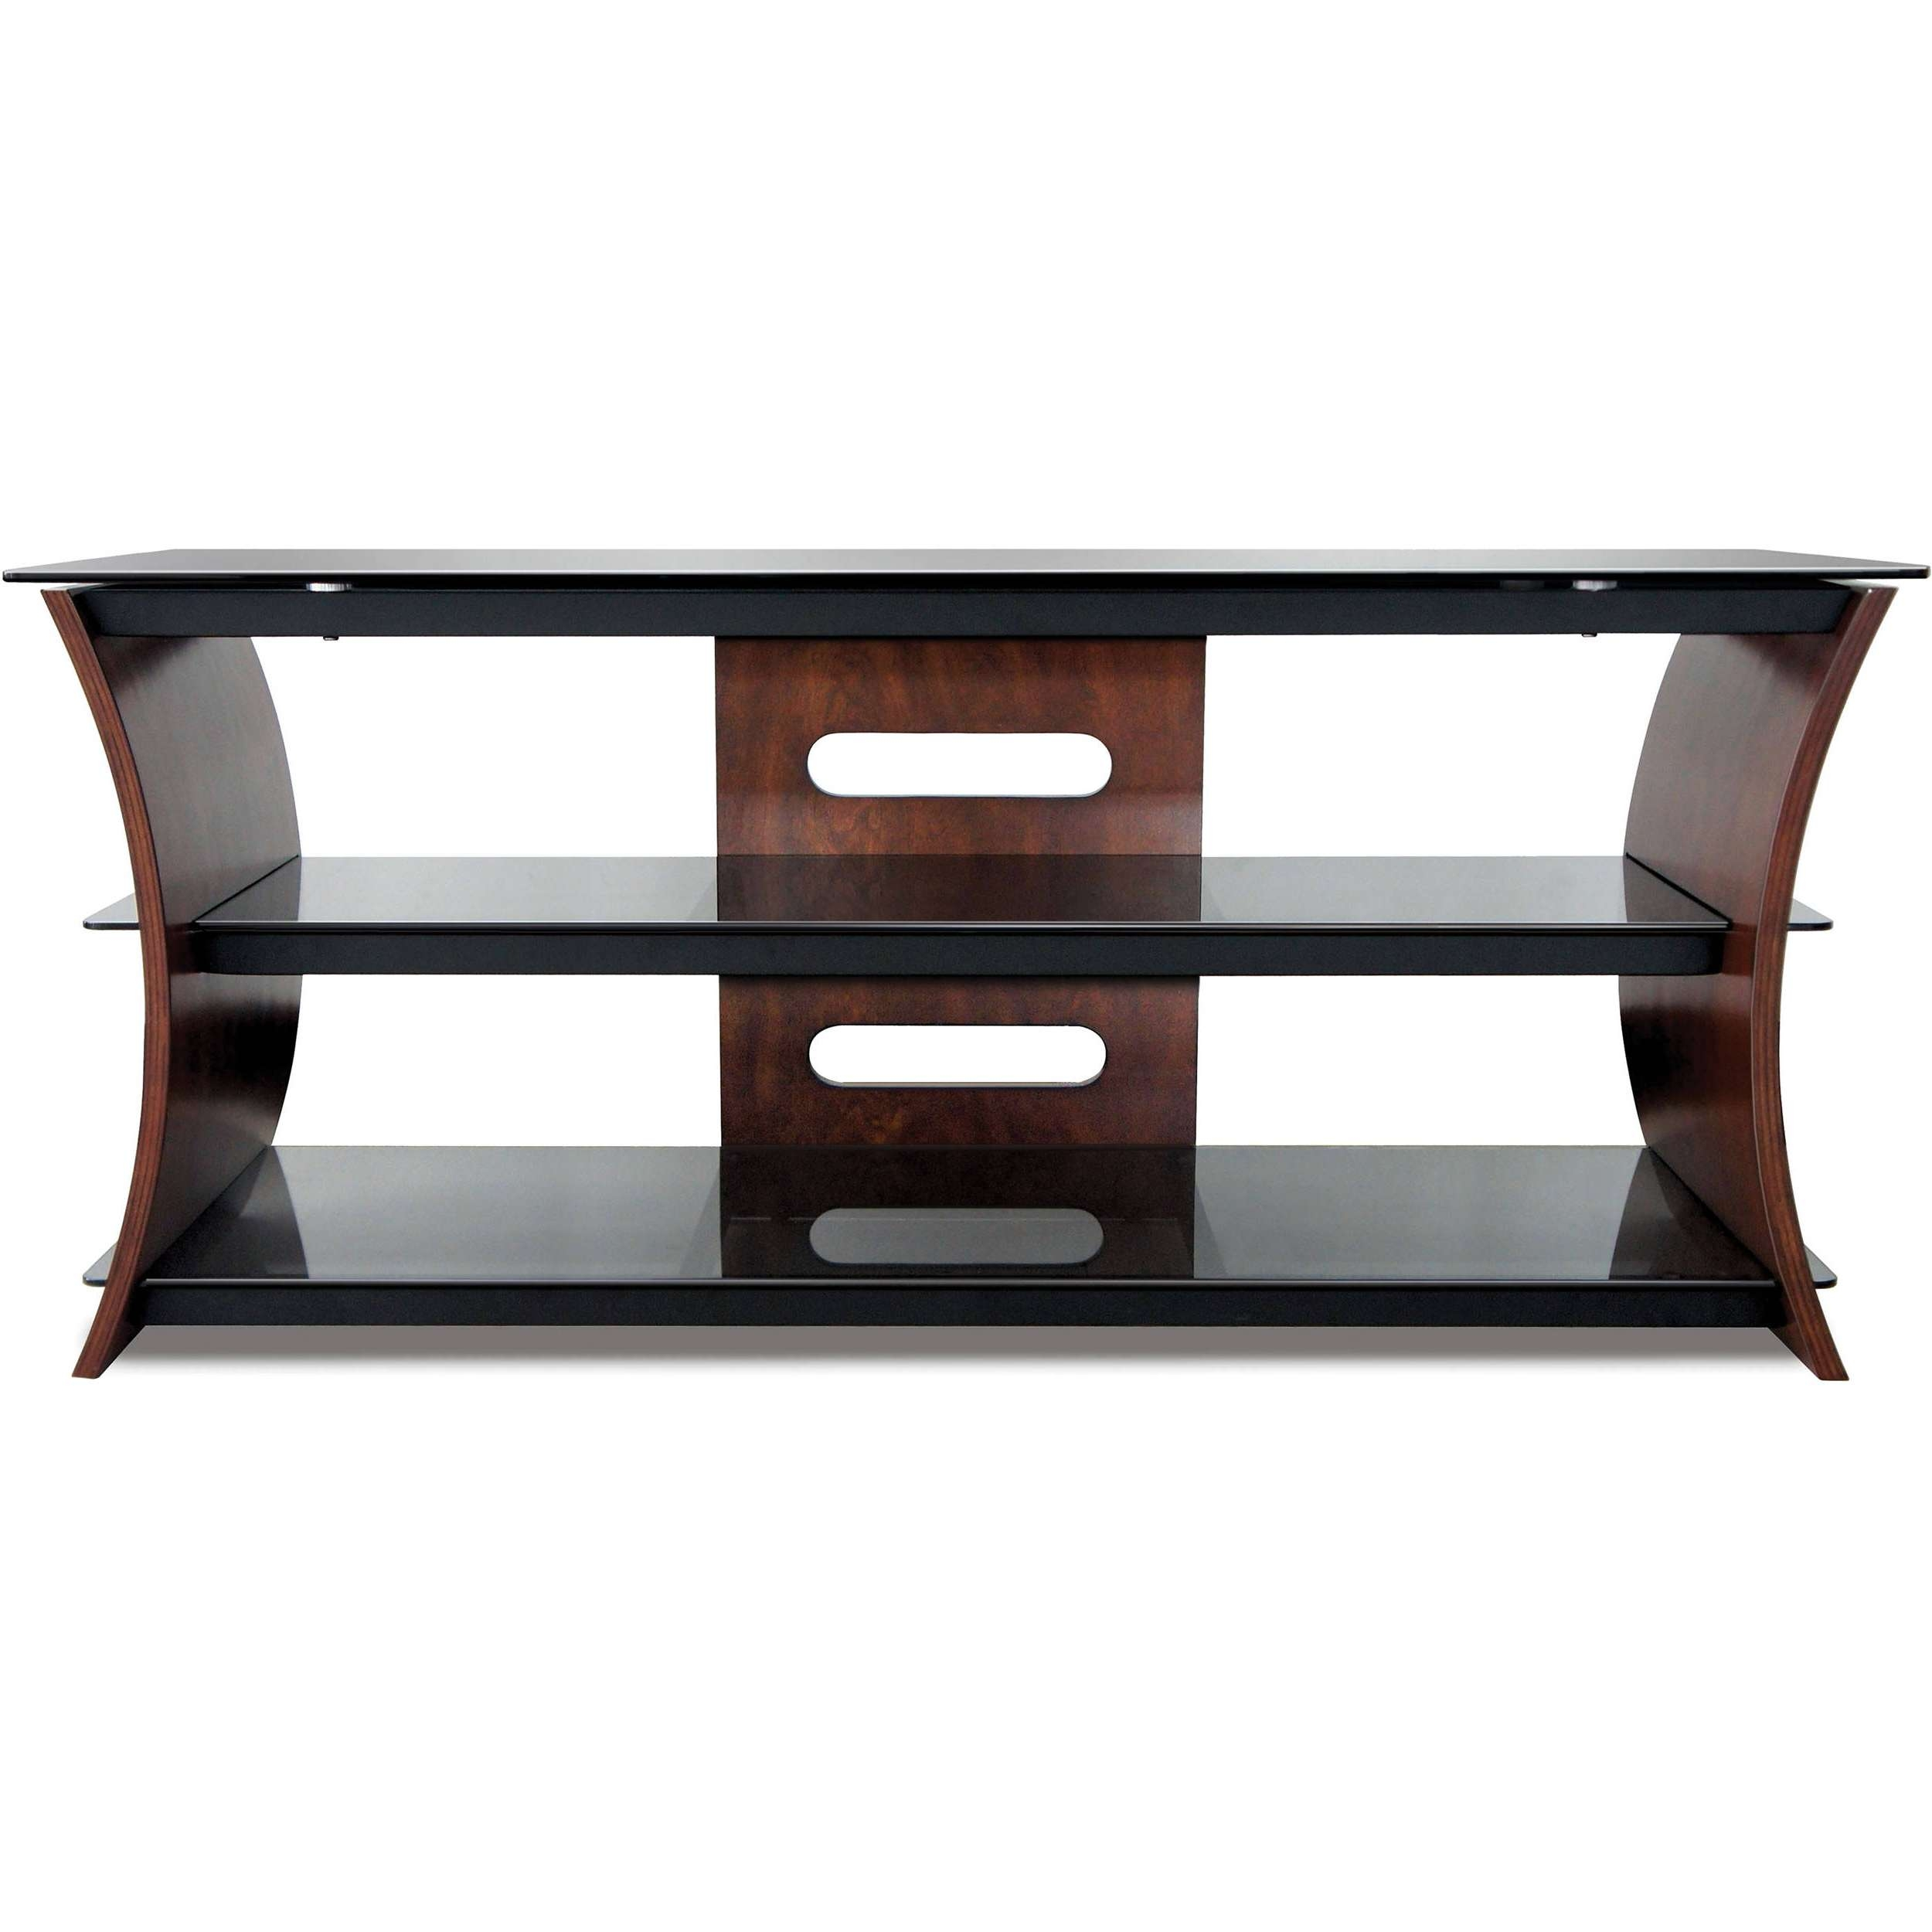 Bell'o Cw356 Curved Wood Tv Stand Cw356 B&h Photo Video Intended For Wood Tv Stands (View 4 of 15)